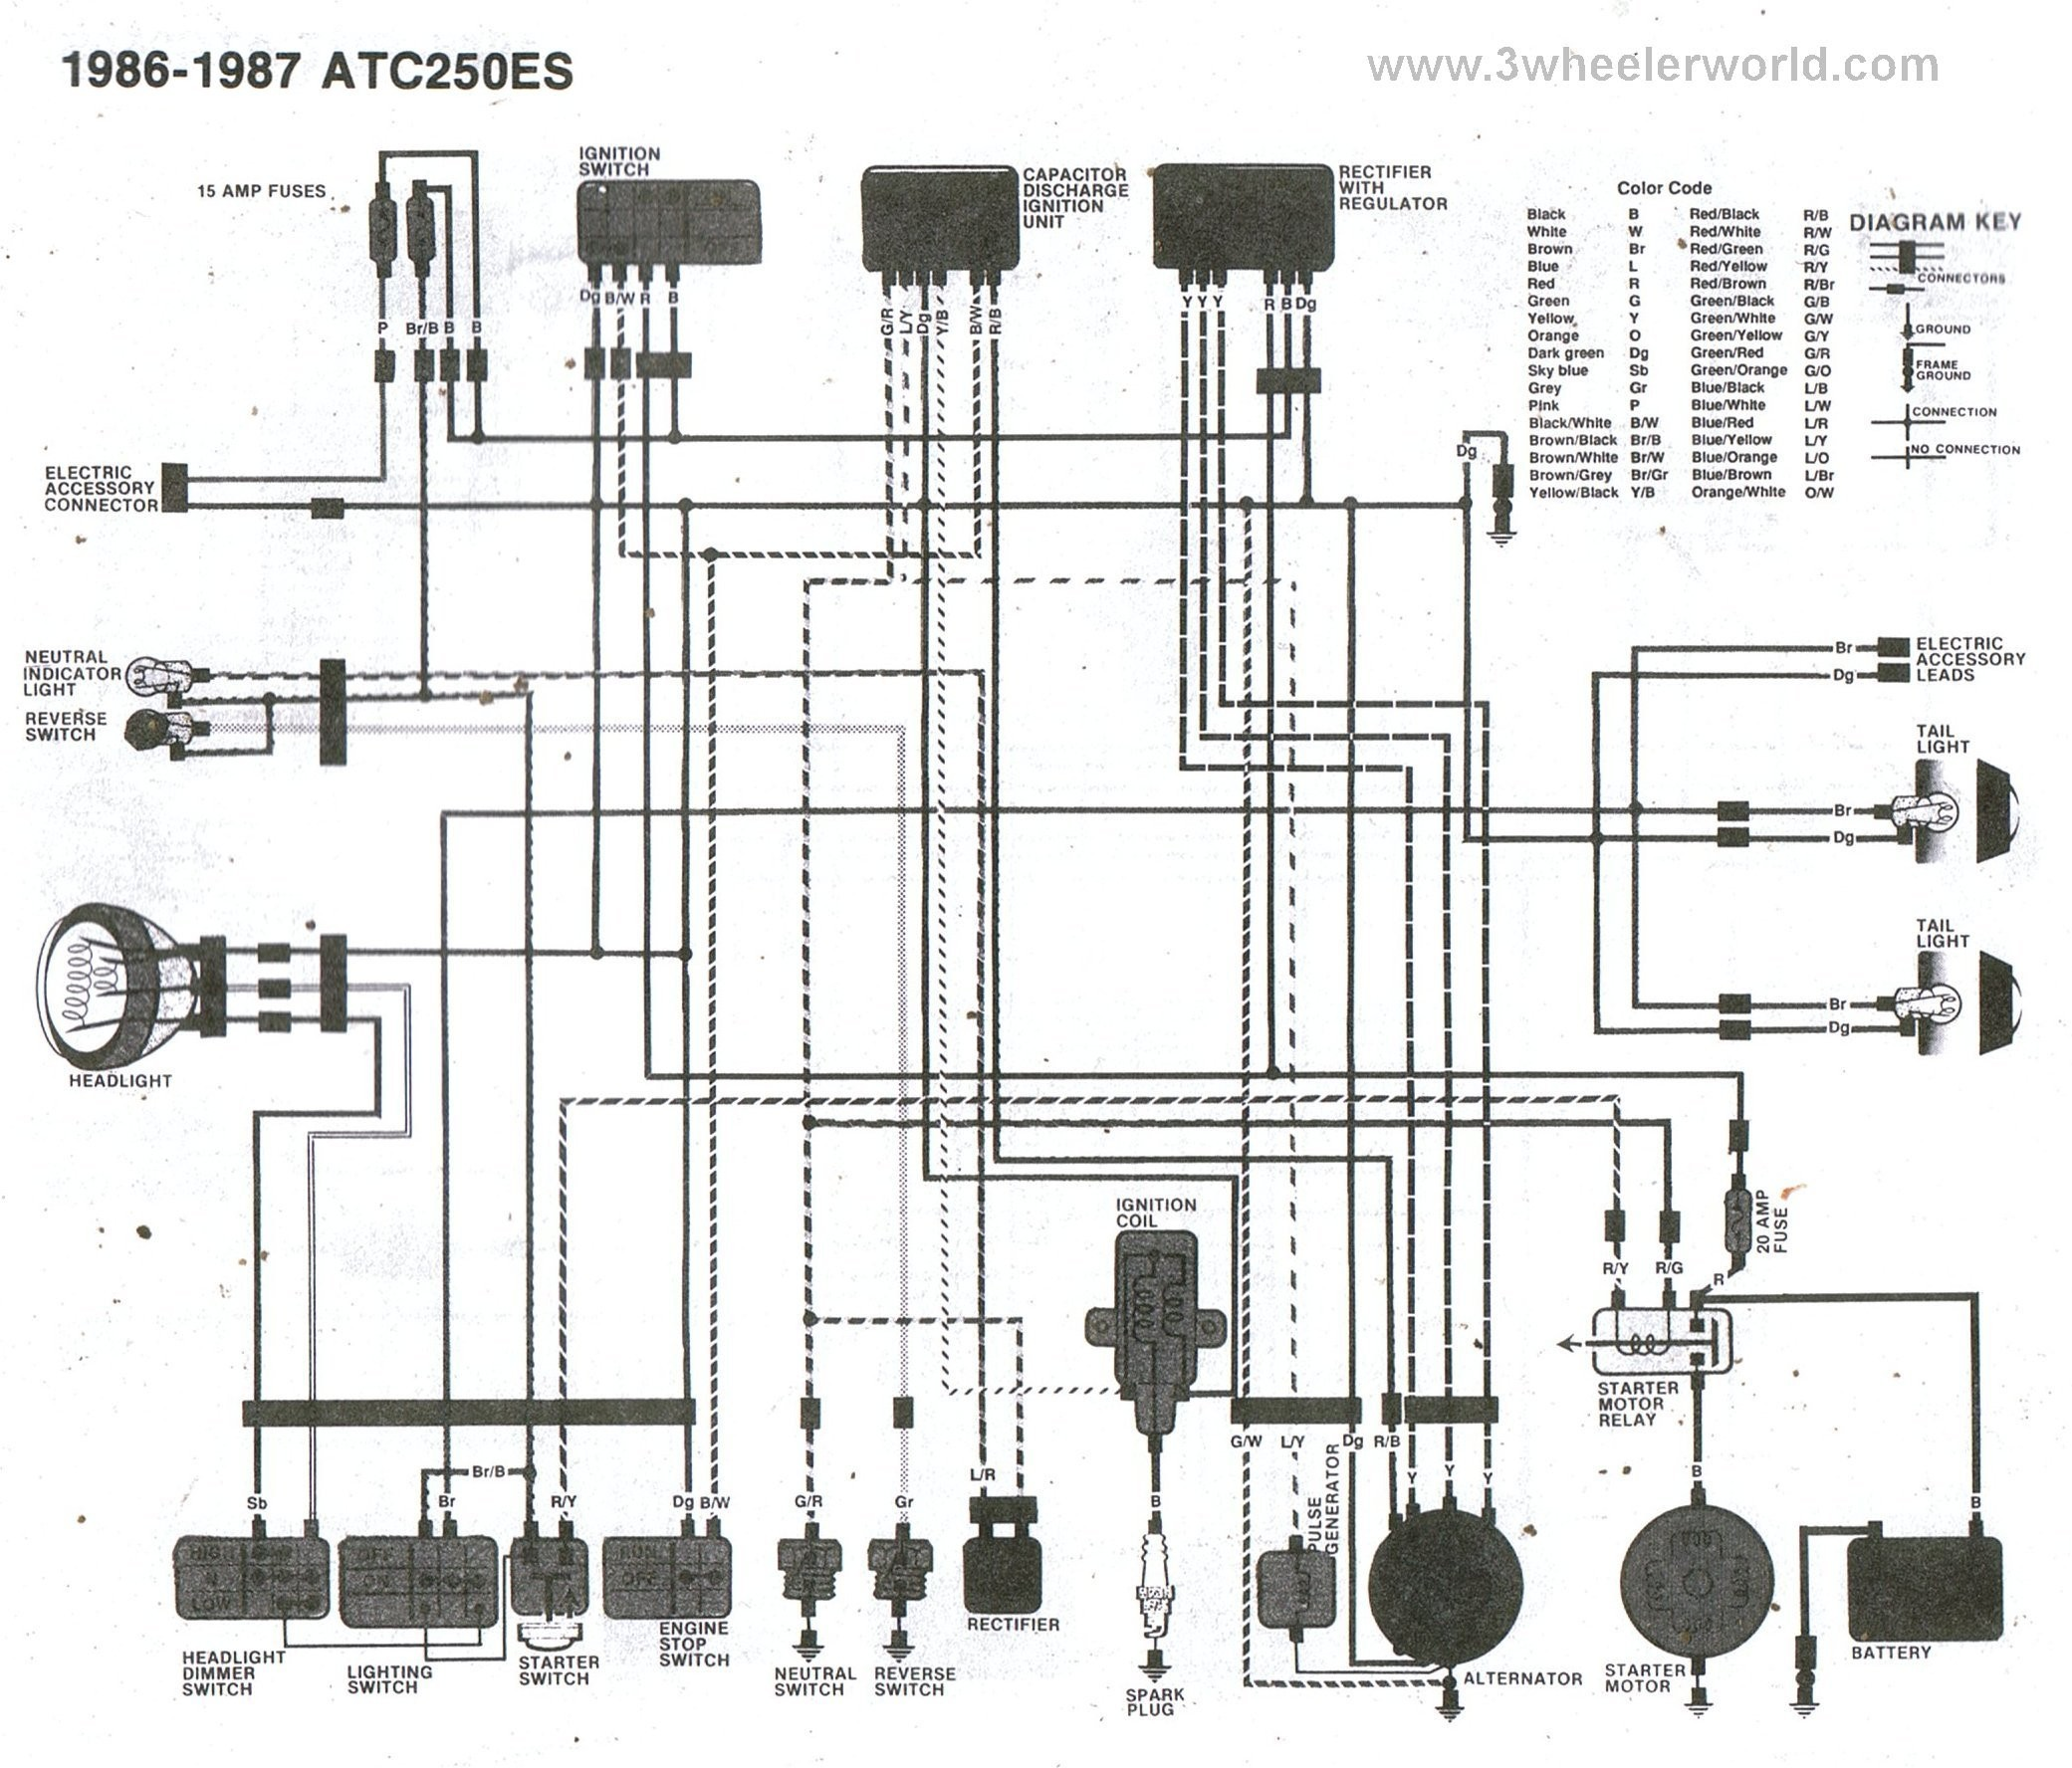 DIAGRAM] Honda Trx400ex Wiring Diagram FULL Version HD Quality Wiring  Diagram - VIRTUALNETWORKDIAGRAM.EMERICGATELIER.FRvirtualnetworkdiagram.emericgatelier.fr